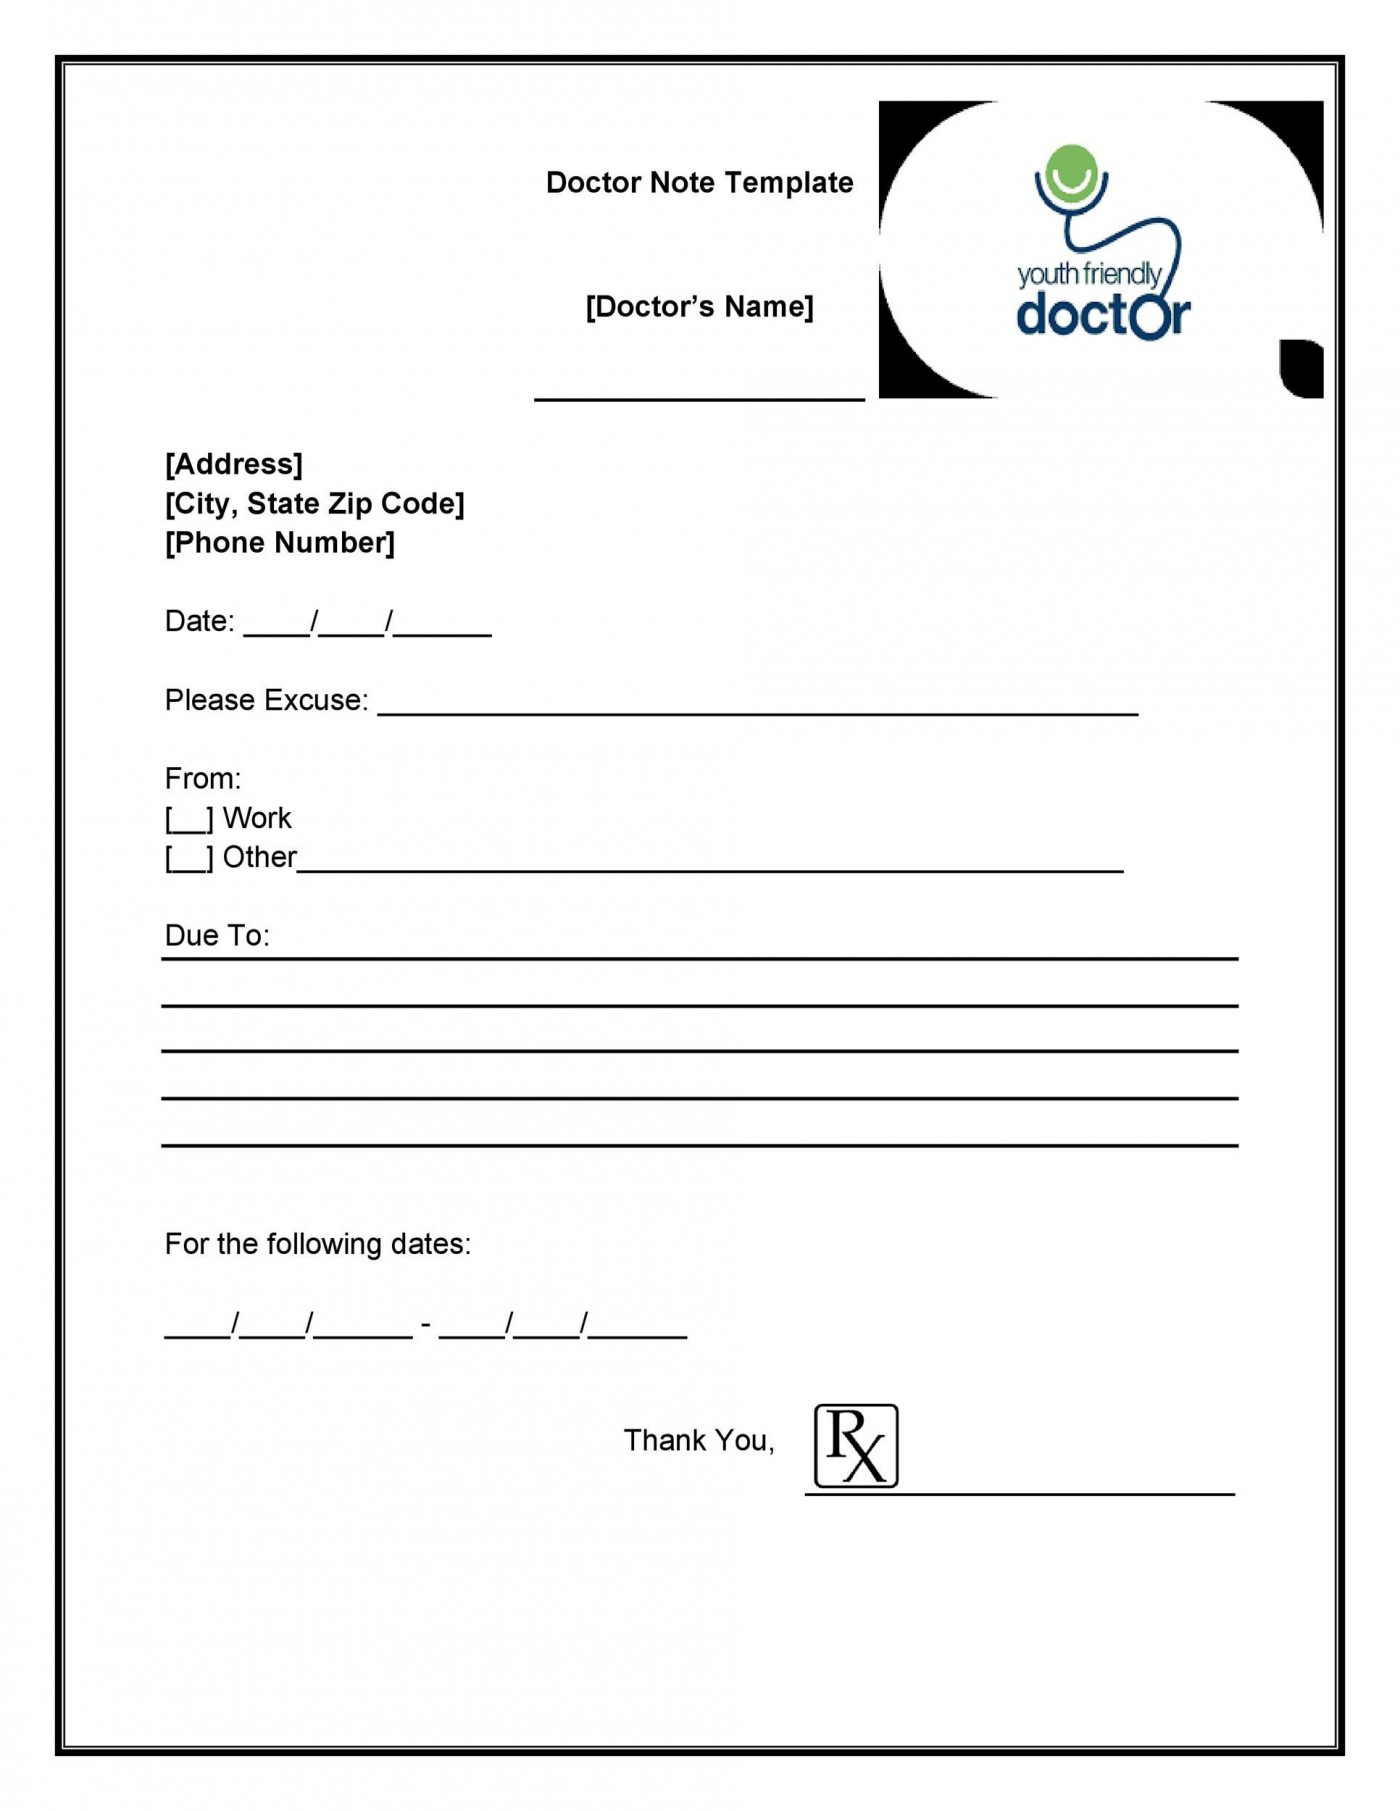 003 Exceptional Doctor Note Template Free Download High Def  Fake1400